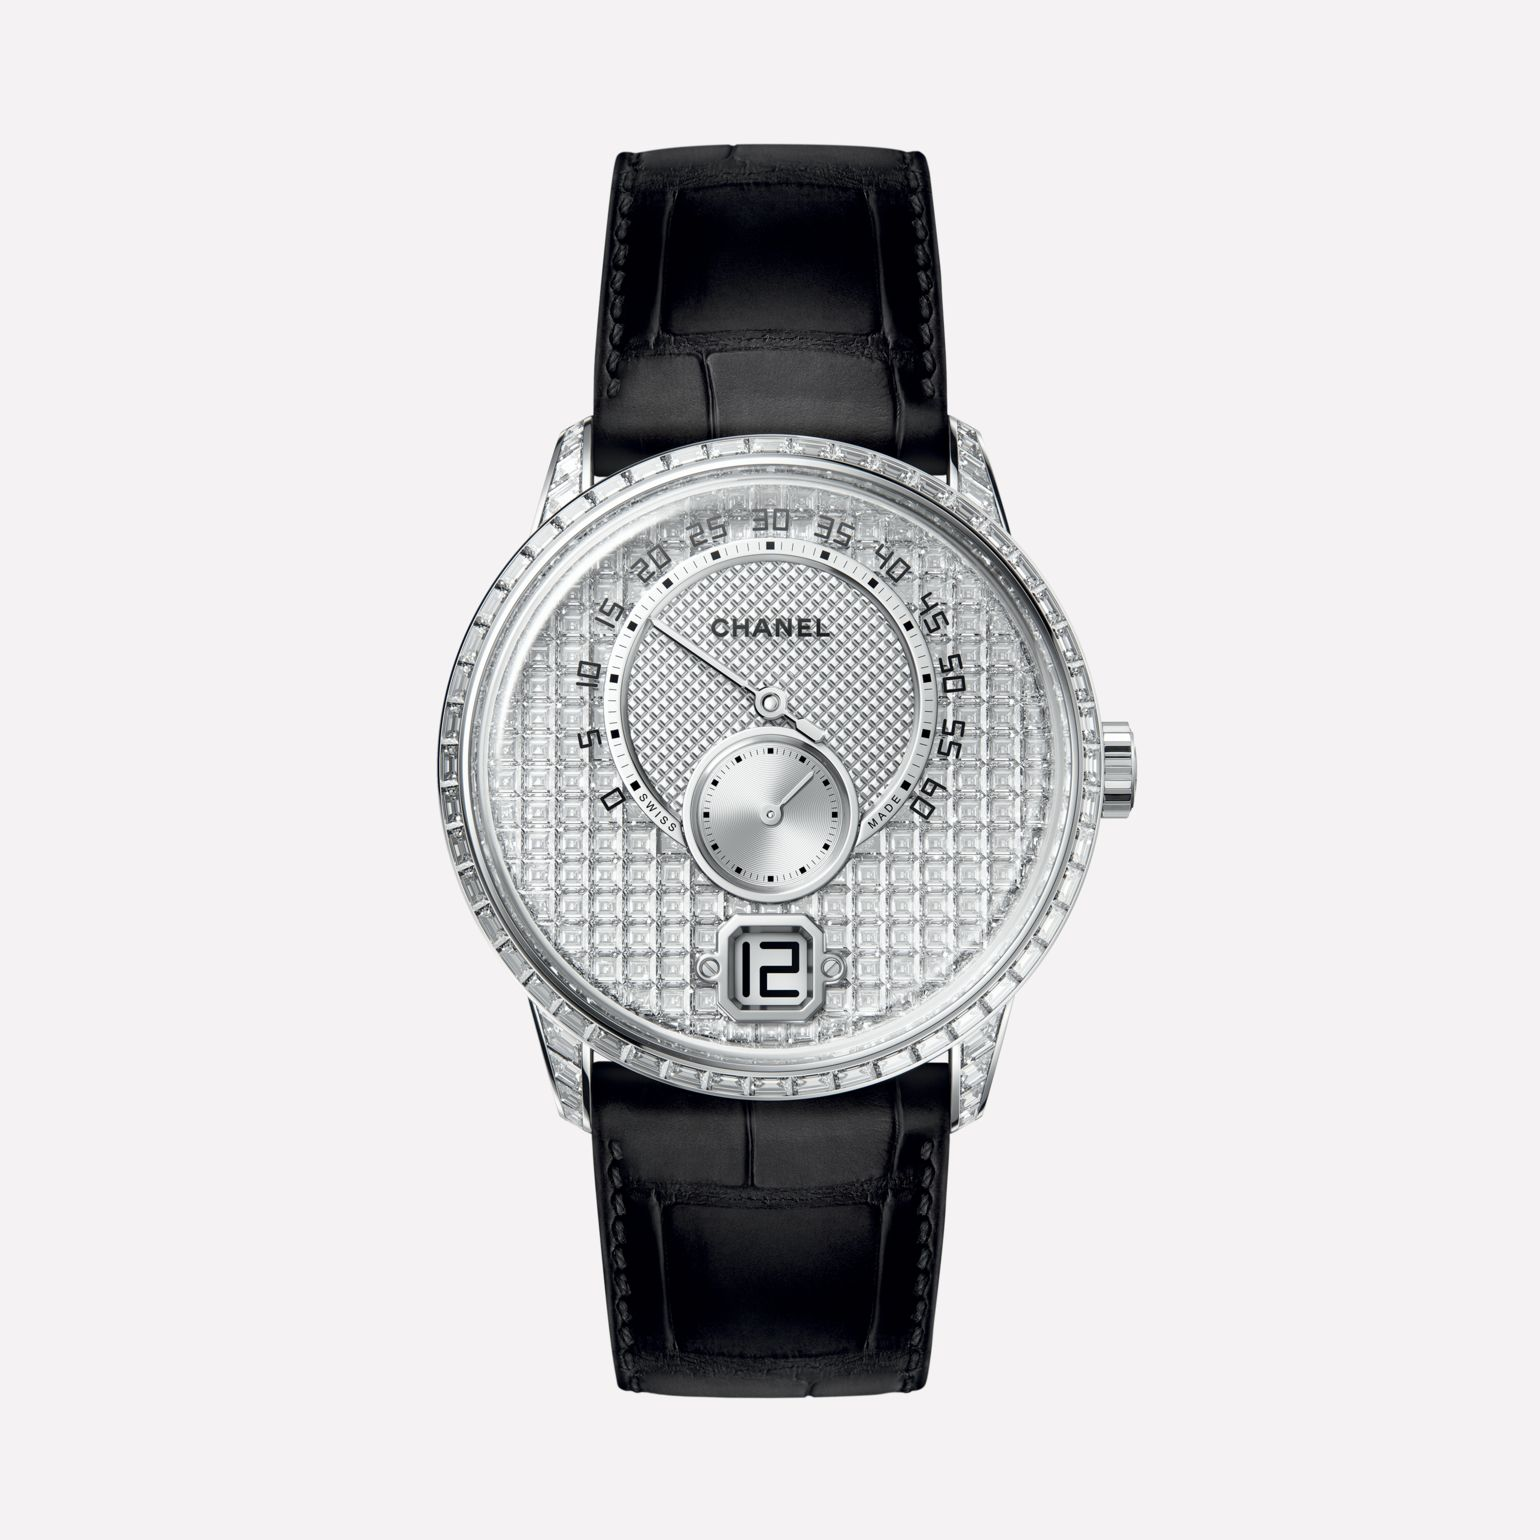 Monsieur Watch 18K white gold, case and dial set with baguette-cut diamonds, jumping hour and 240° retrograde minute